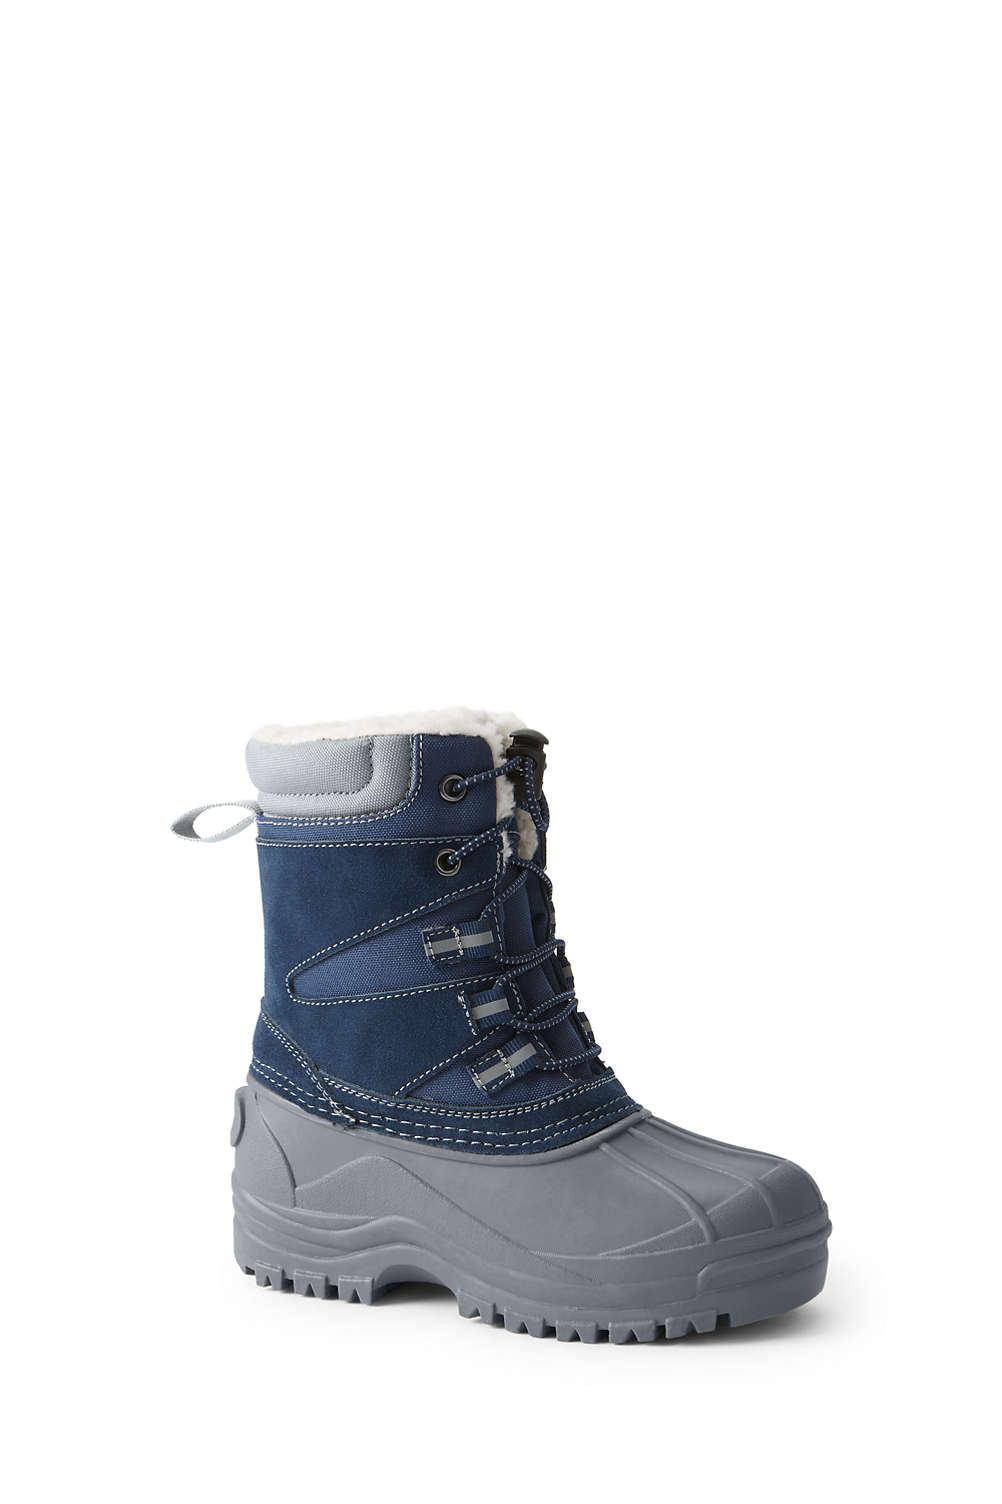 11d33ed04 Kids Expedition Insulated Winter Snow Boots from Lands  End